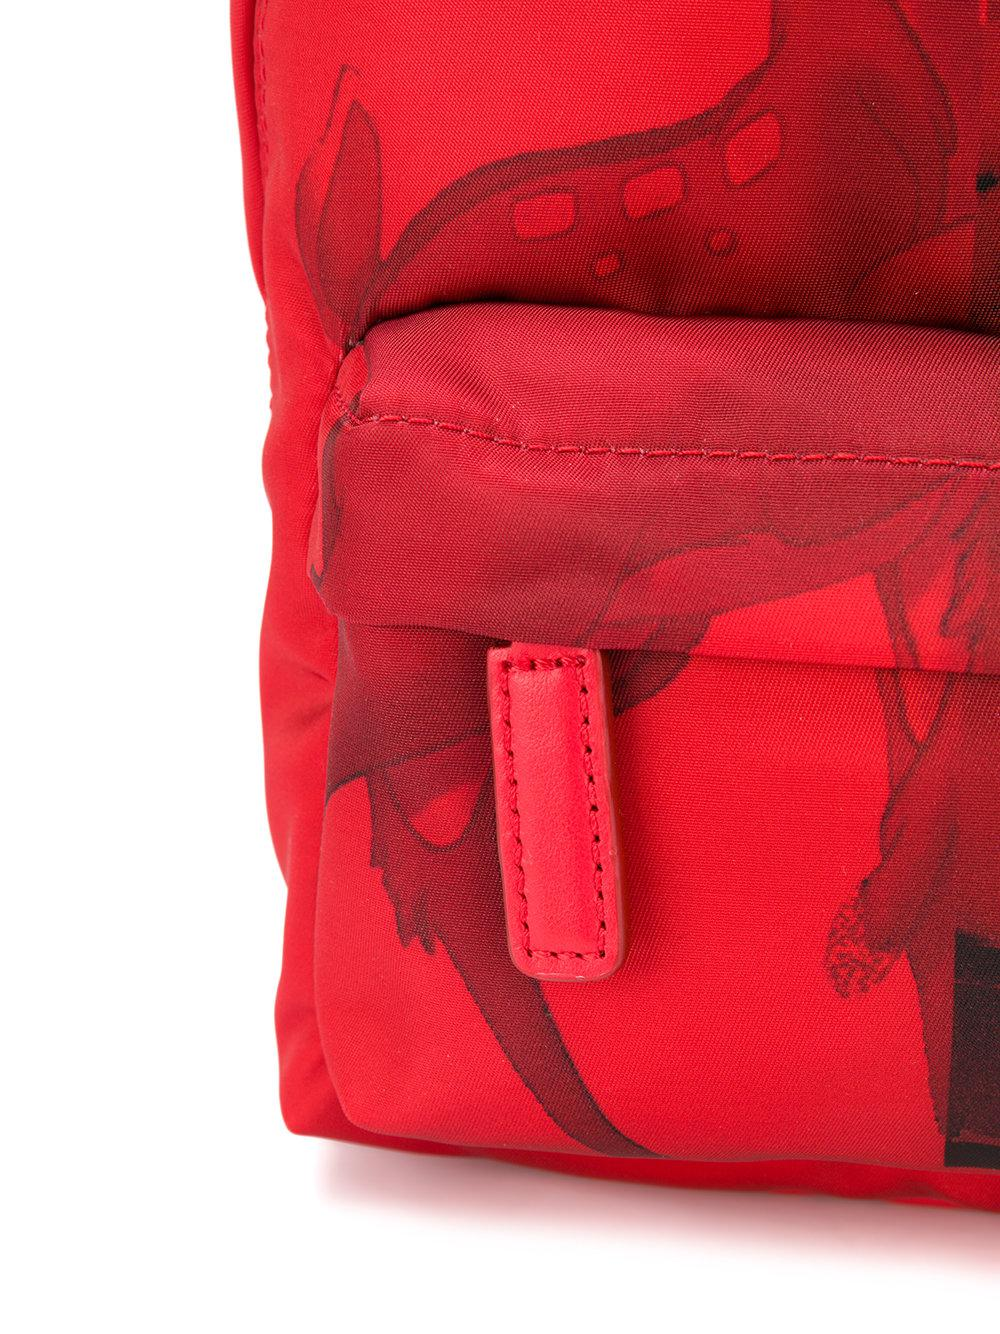 3b0b544e36 Lyst - Givenchy Red Bambi Print Small Backpack Bag in Red